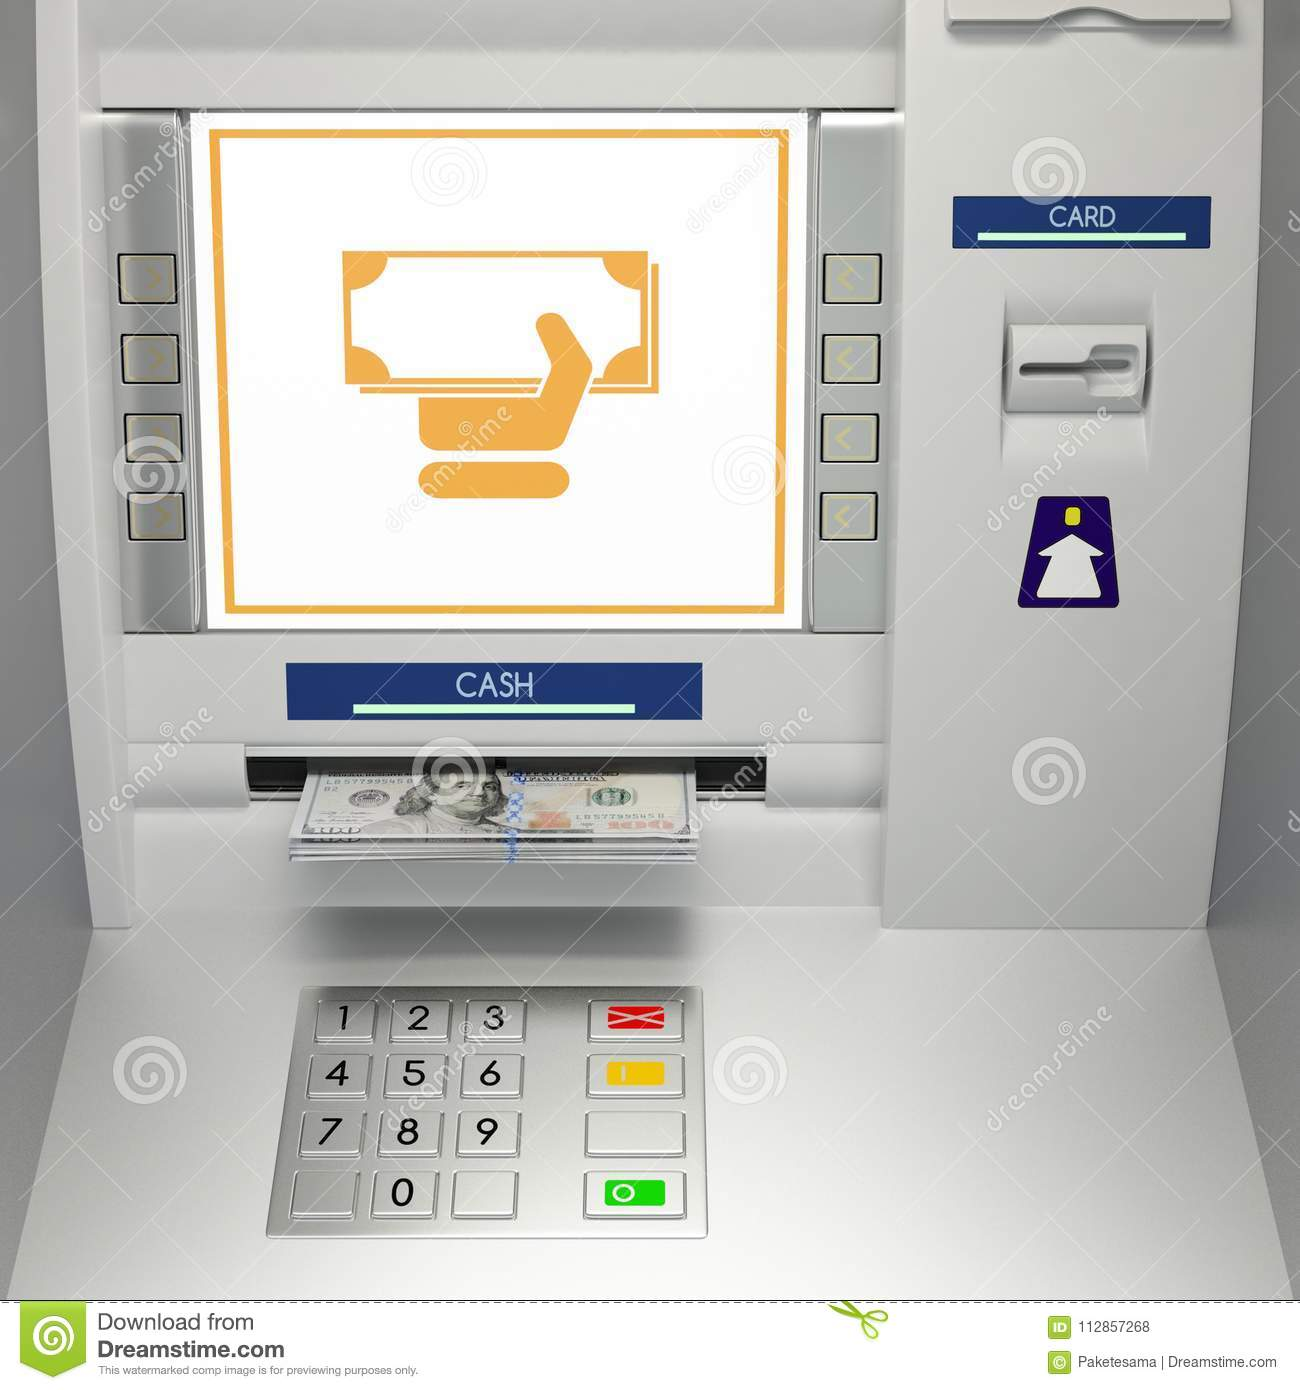 Atm Machine With Banknotes In The Money Slot Stock Illustration Illustration Of Monitor Deposit 112857268